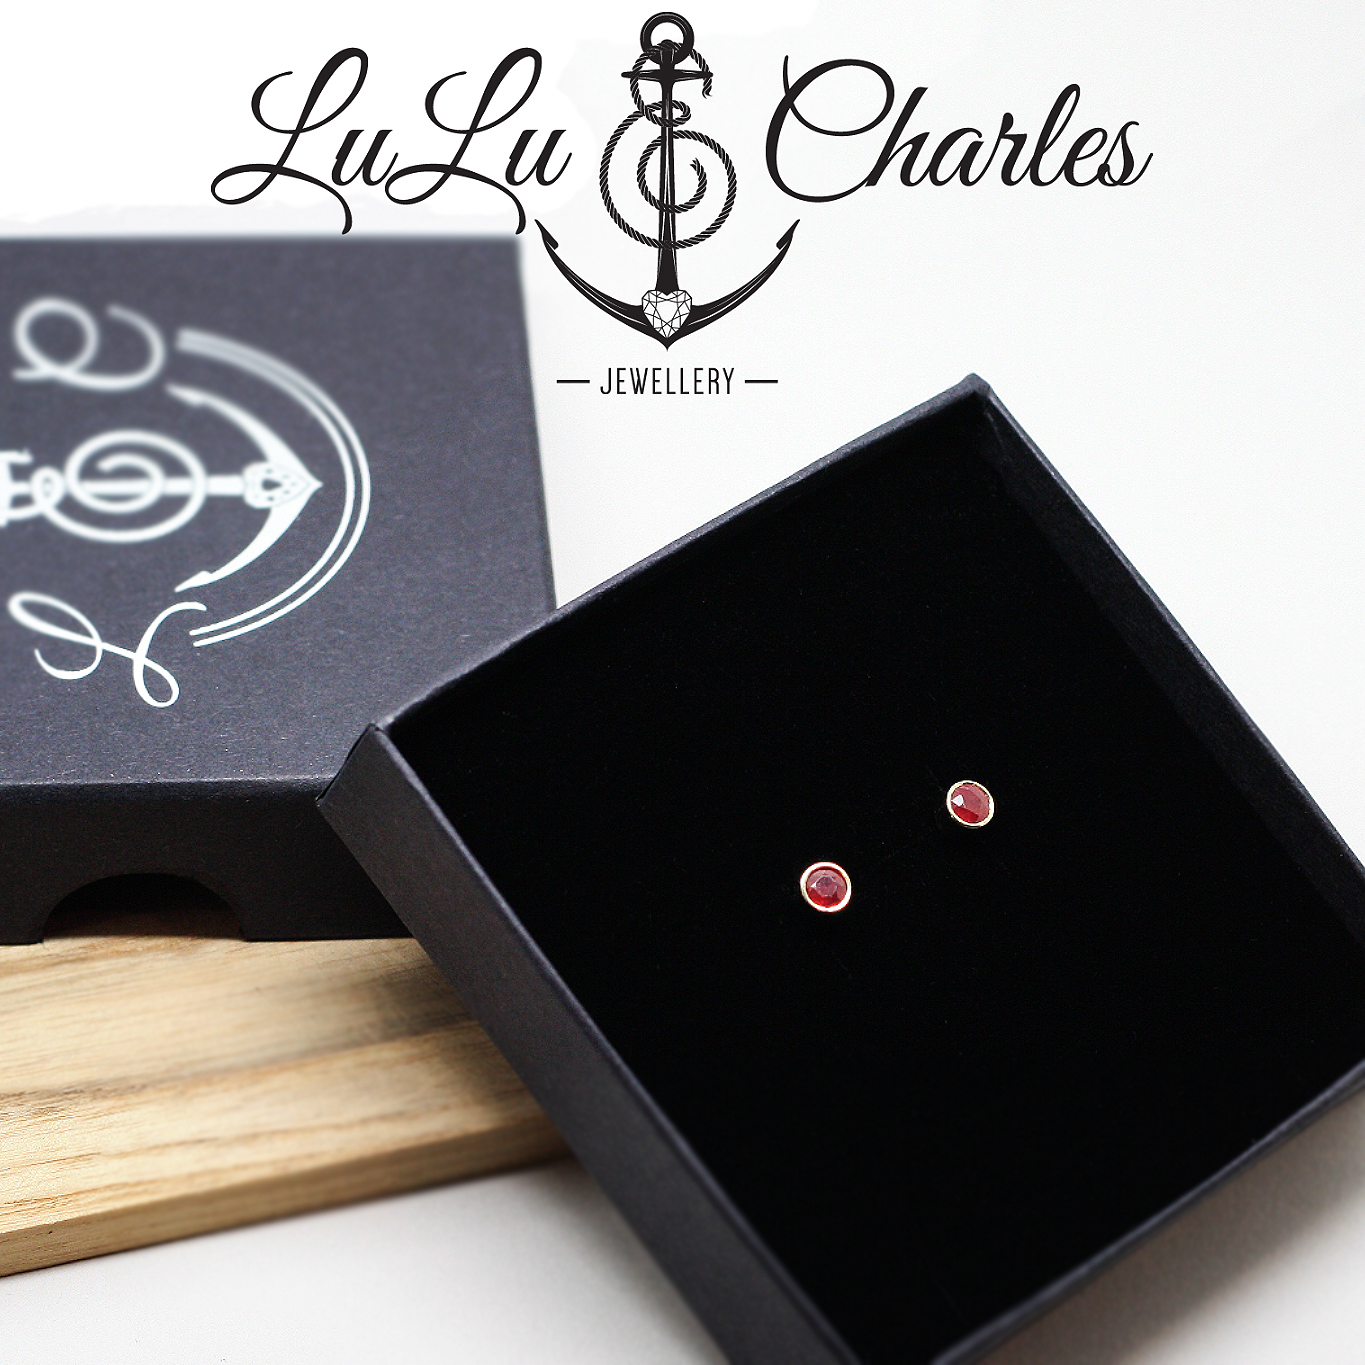 Bespoke Handmade 9ct Gold Memorial Ruby Earrings containing Cremation Ashes, memorial jewellery durham uk, cremation jewellery durham uk